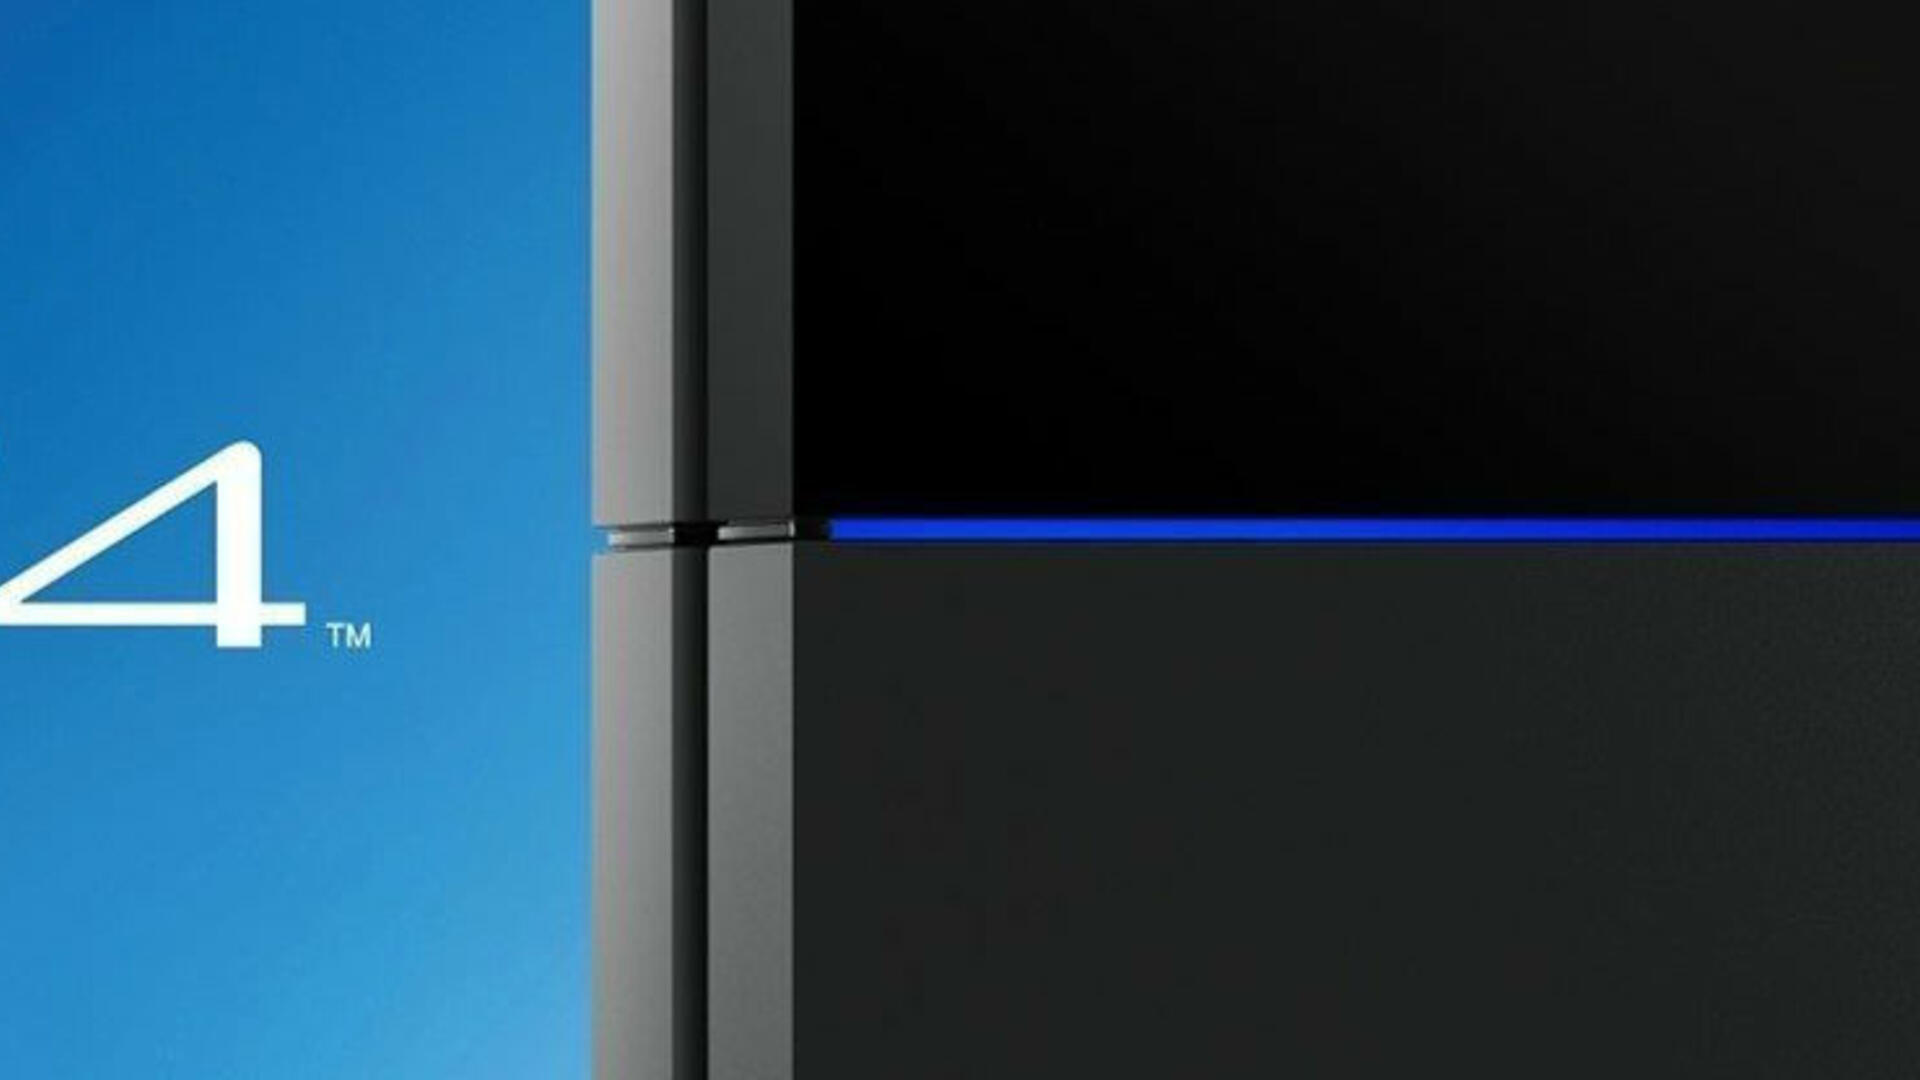 Sony Sells 25 Million PlayStation 4 Systems, Outpacing the PlayStation 2